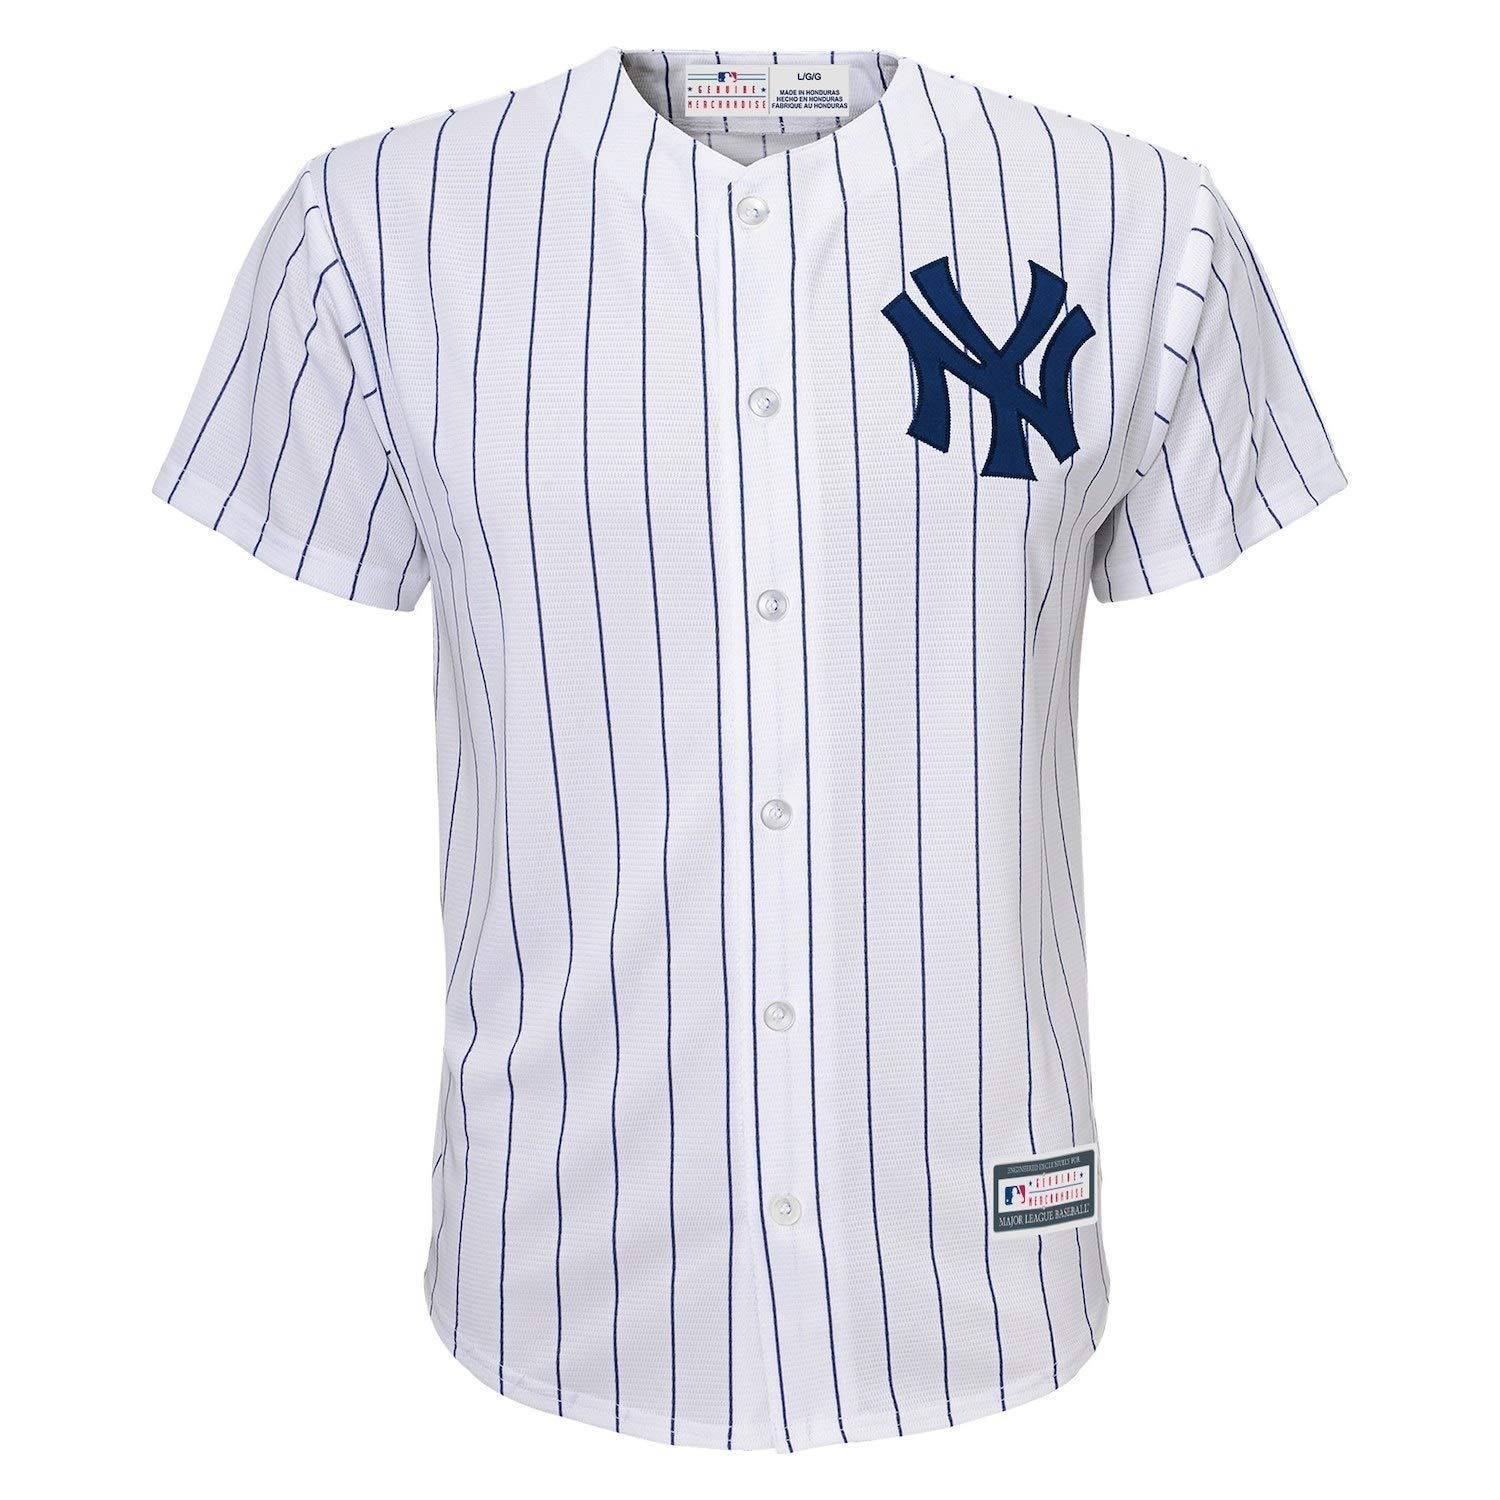 Amazon.com: Outerstuff Mickey Mantle New York Yankees ...